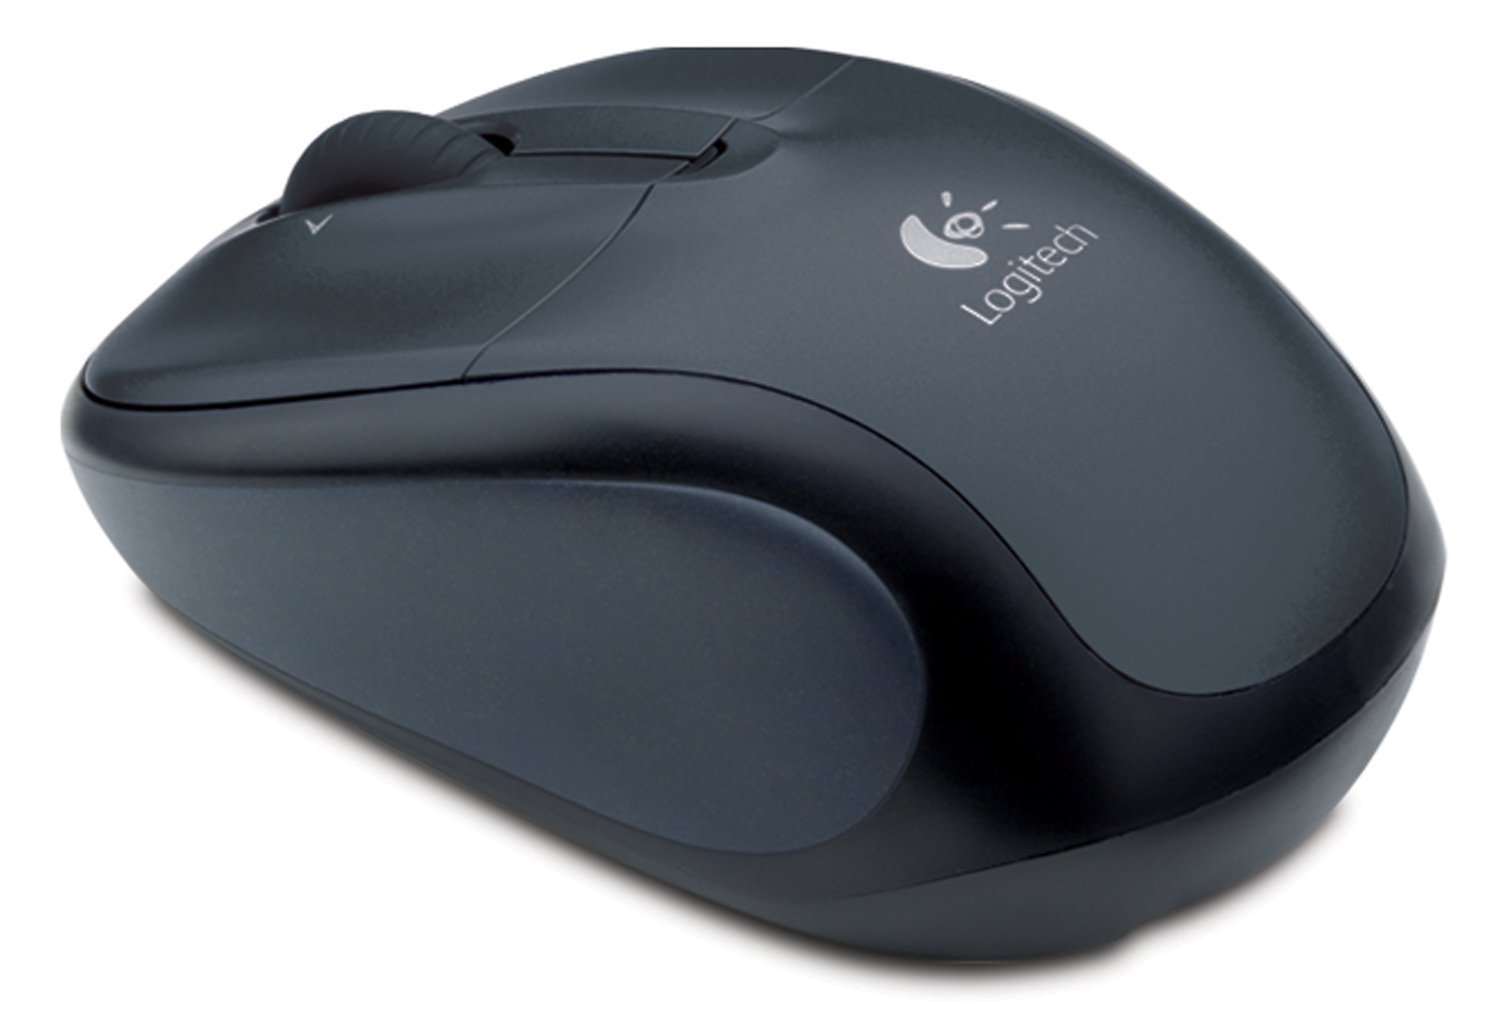 V220 CORDLESS OPTICAL MOUSE DRIVERS DOWNLOAD (2019)